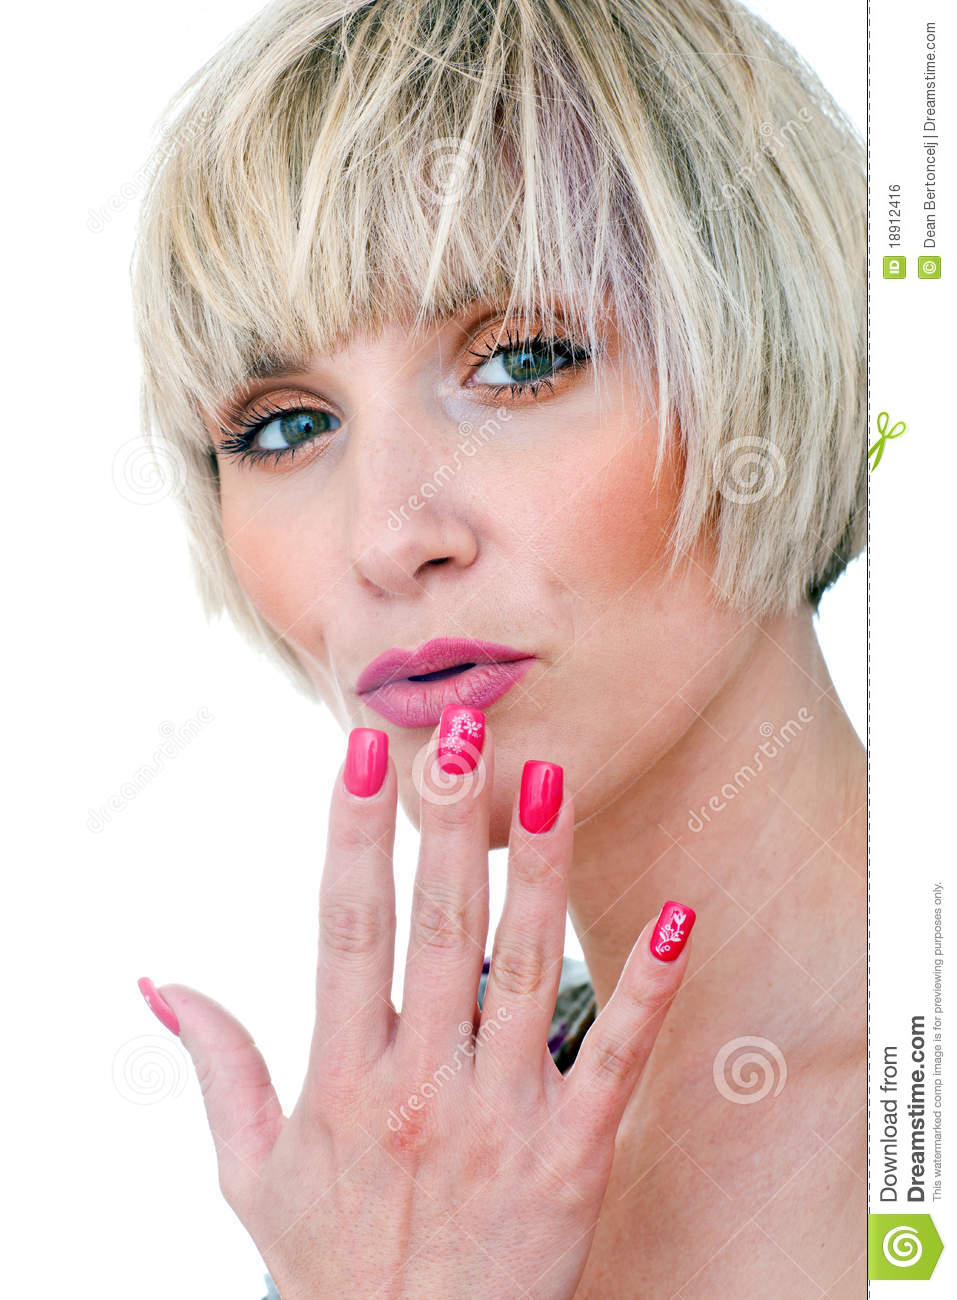 Woman Beauty Portrait With Manicured Nails Royalty Free